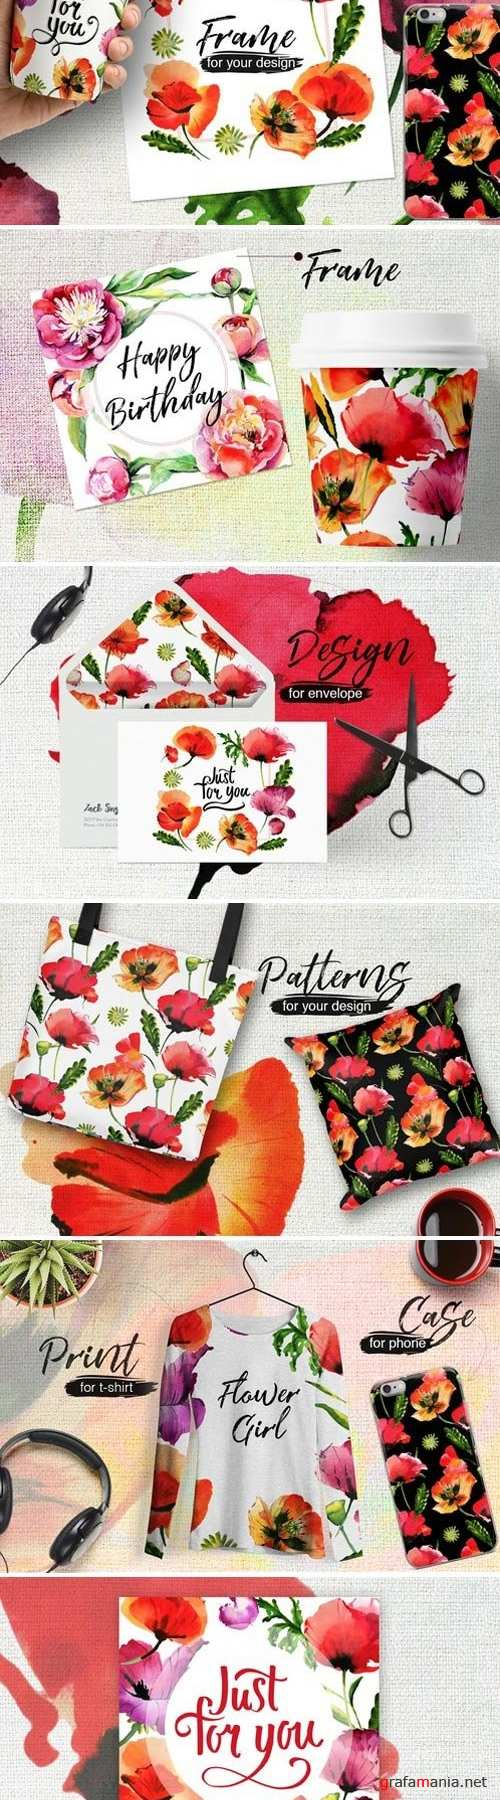 Poppy flowers PNG watercolor set - 4282981